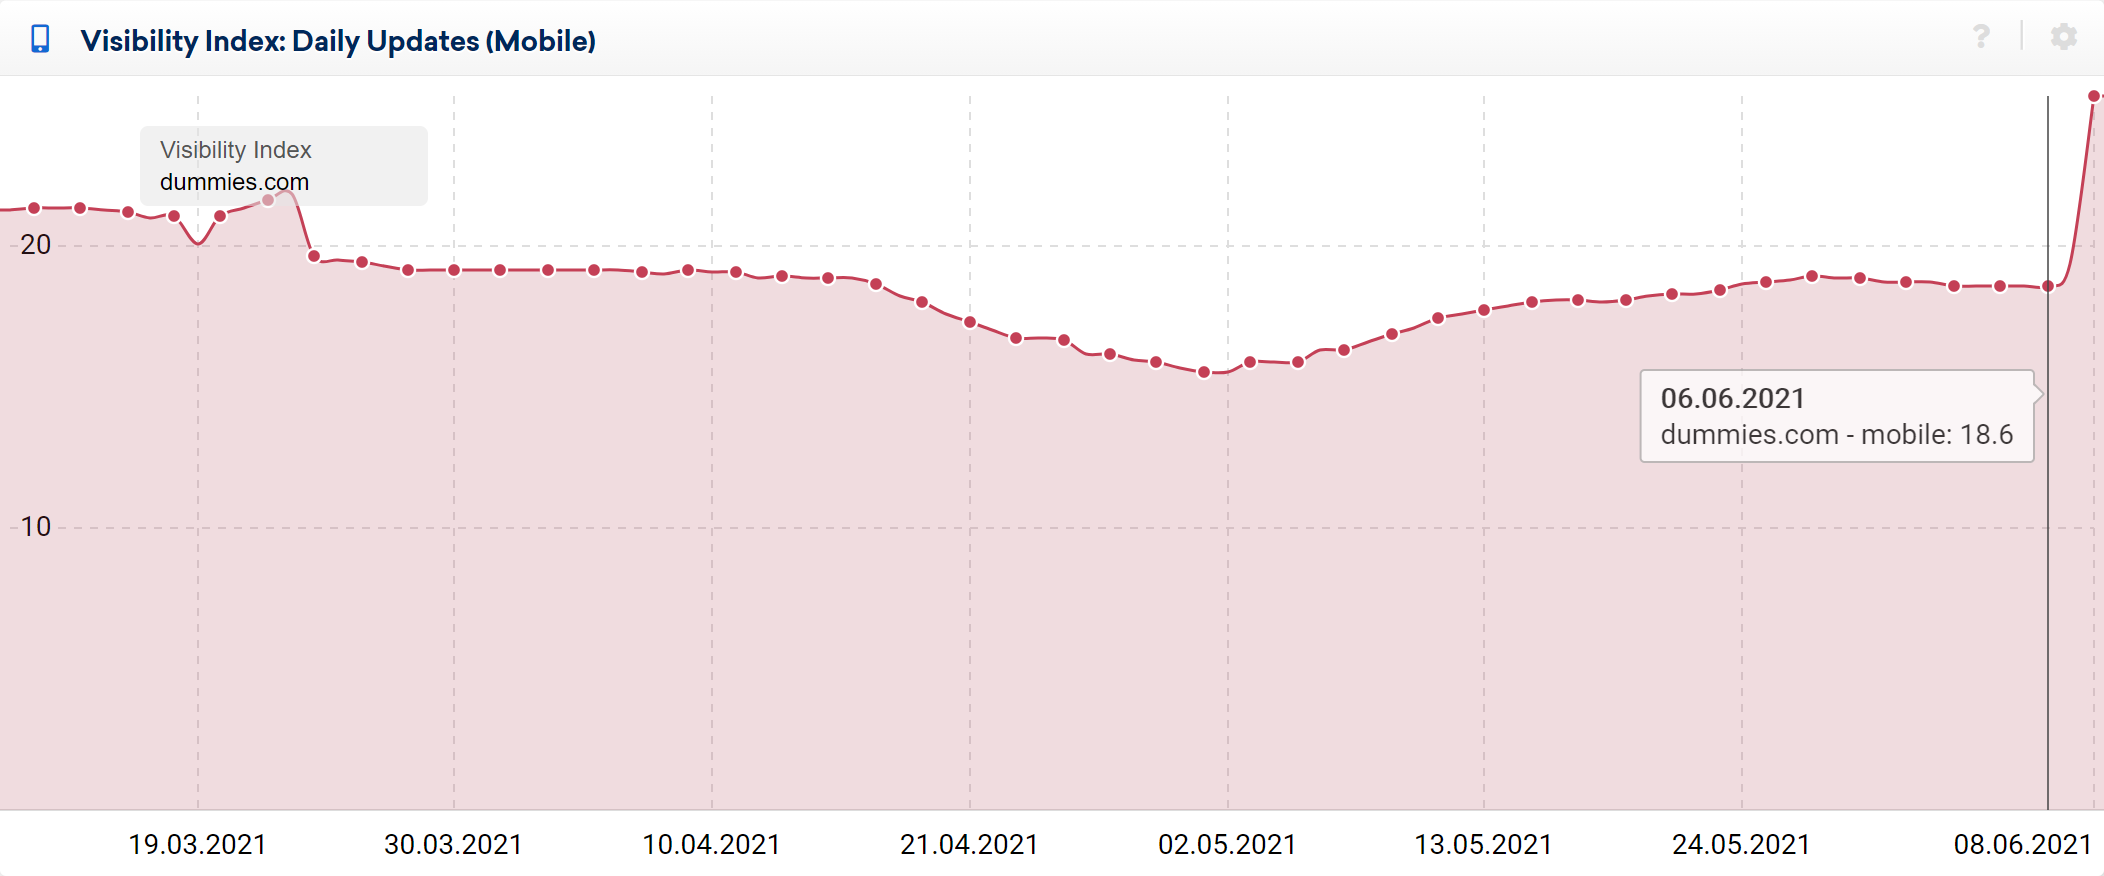 Domain visibility gains at dummies.com show in the Visibility Index graph